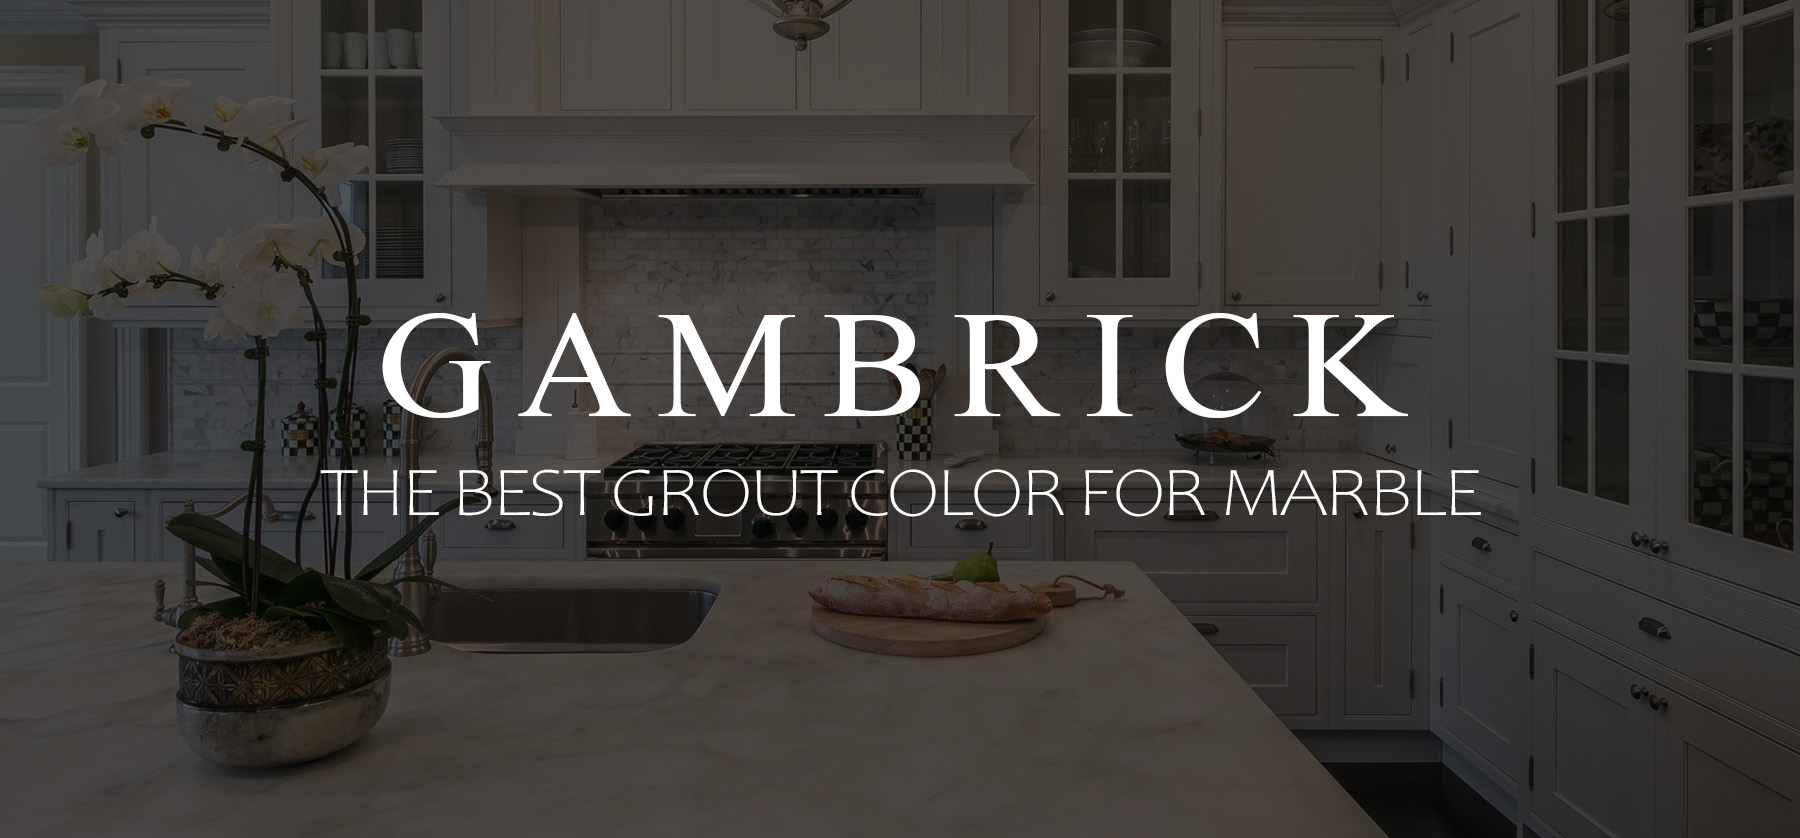 The Best Grout Color For Marble Banner 1